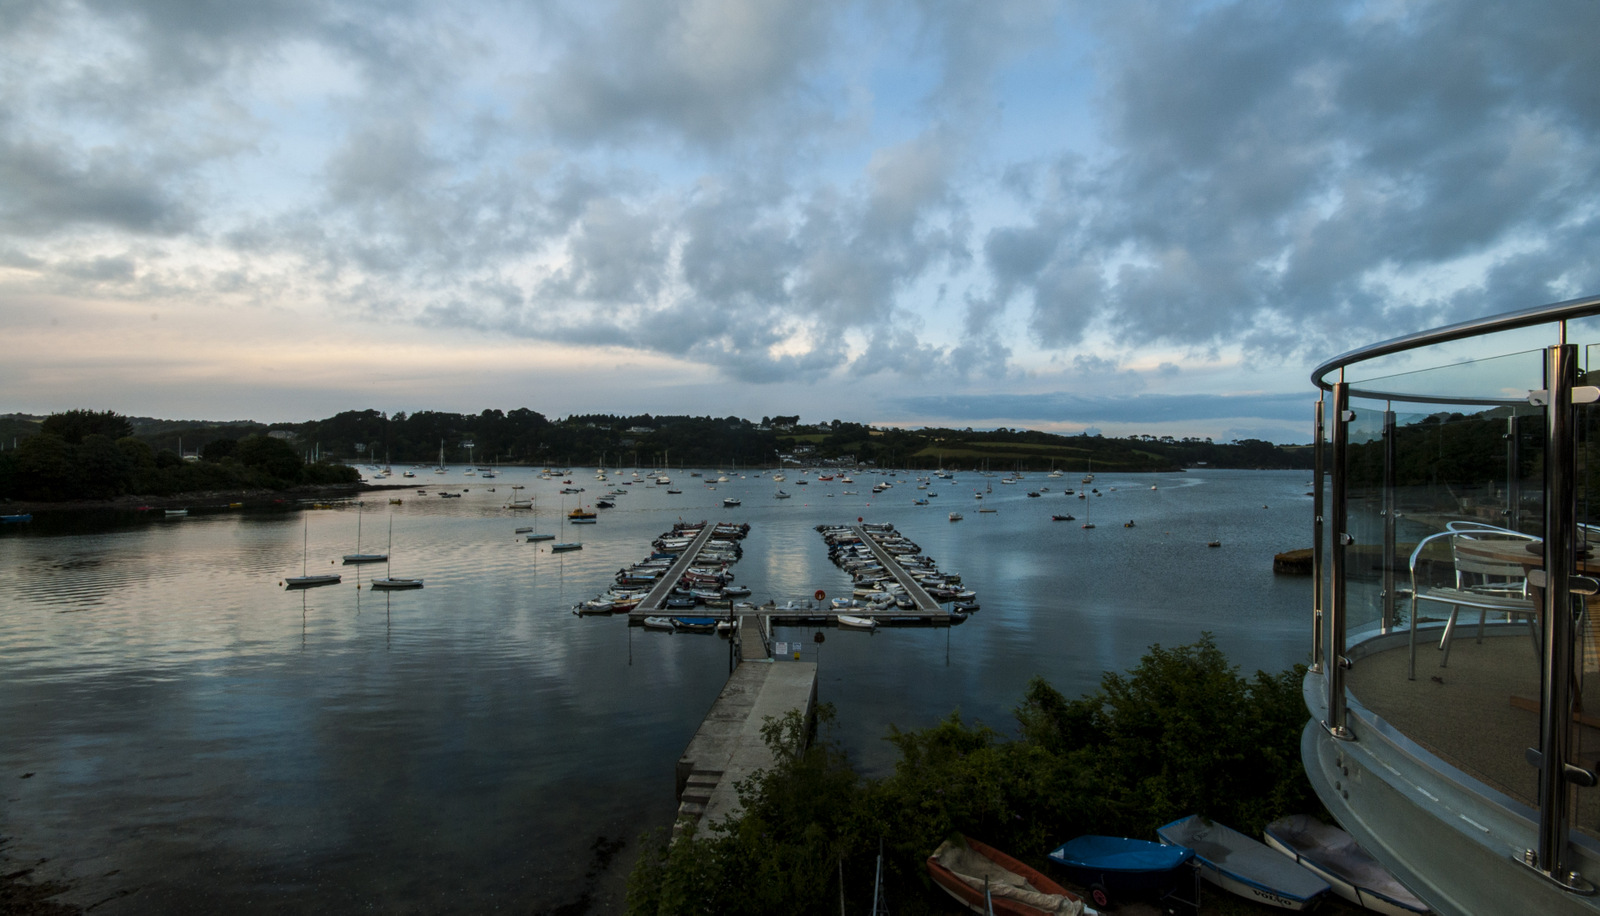 Helford River Sailing Club Sunset 1